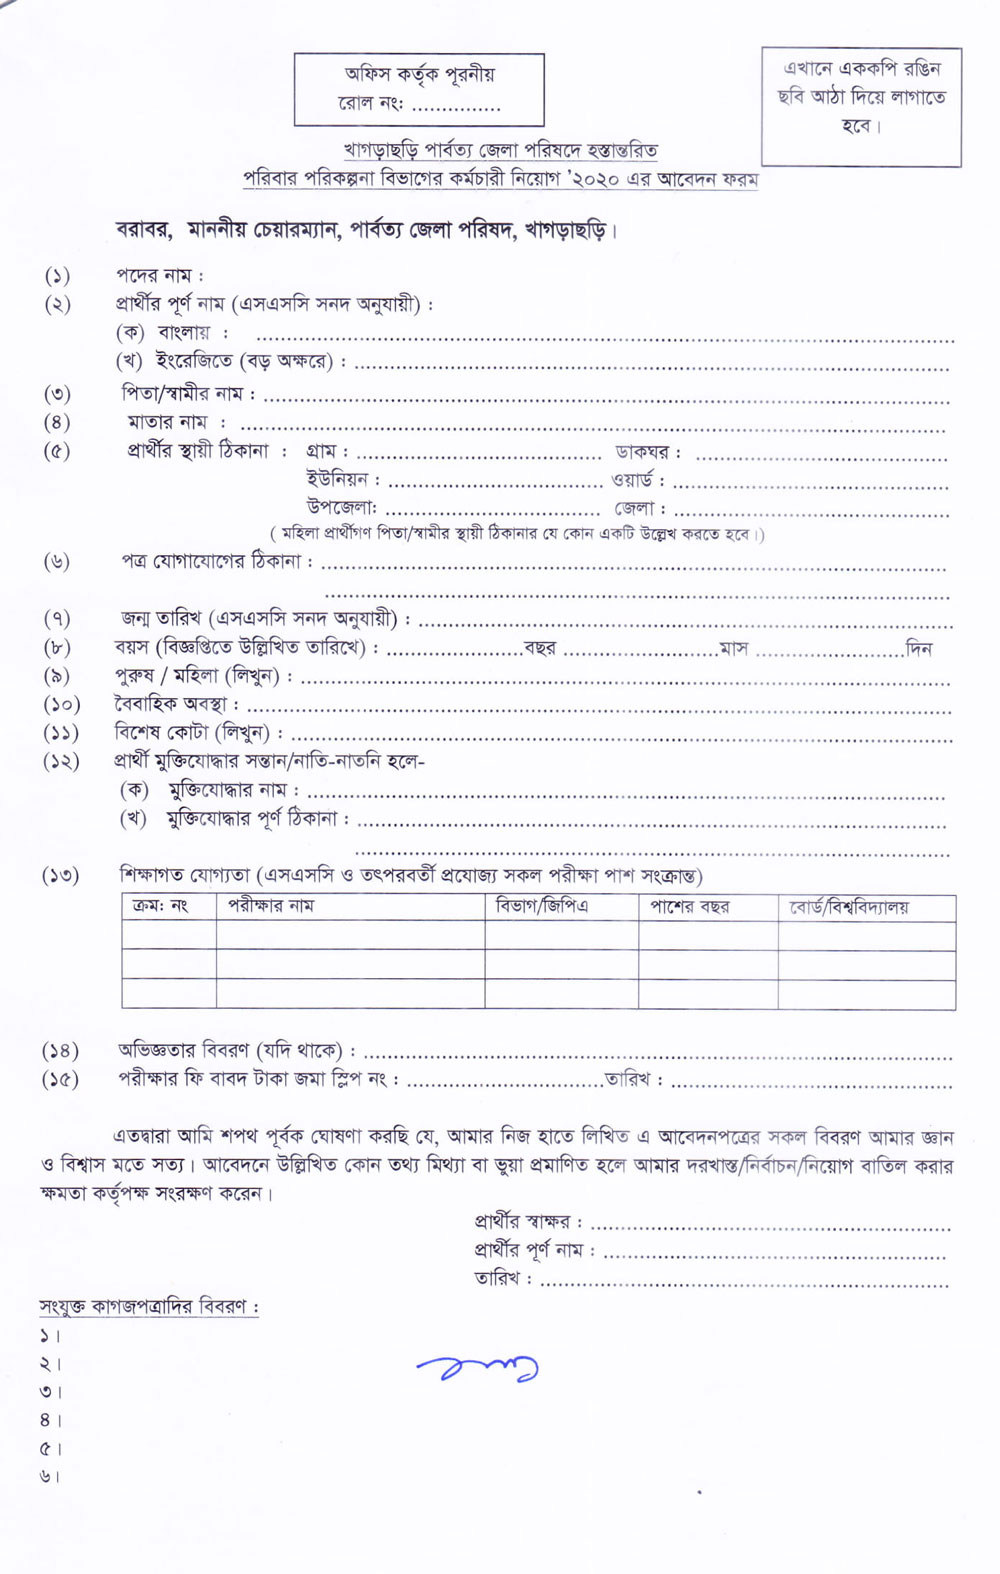 khdc-apply-form-1